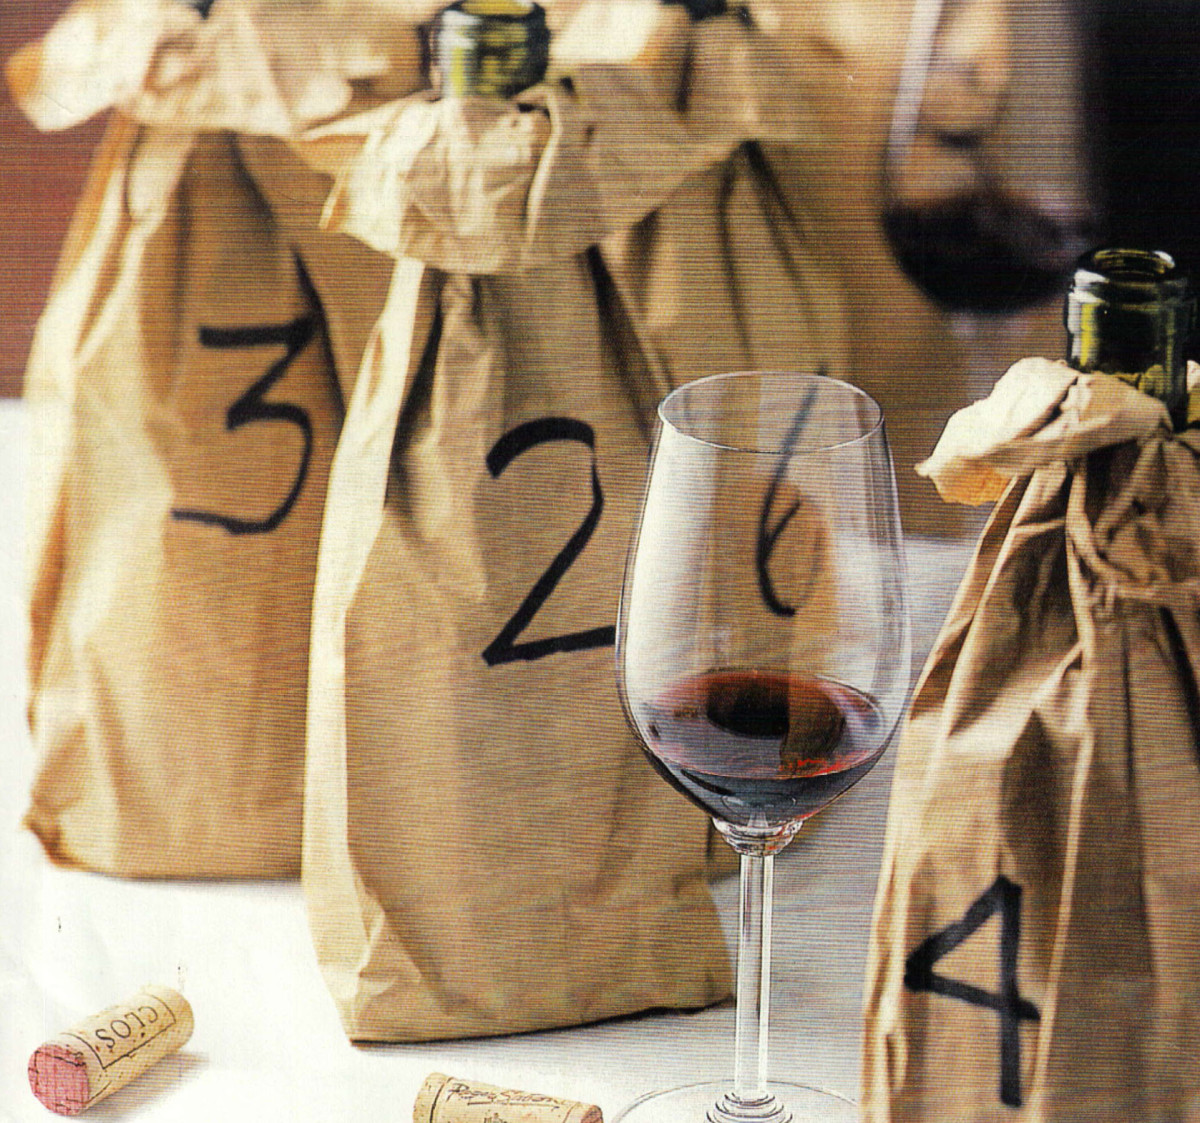 Disguising your wine bottles need not be fancy. If your opting for a blind tasting, this is a simple and creative wine to mask the vessels.